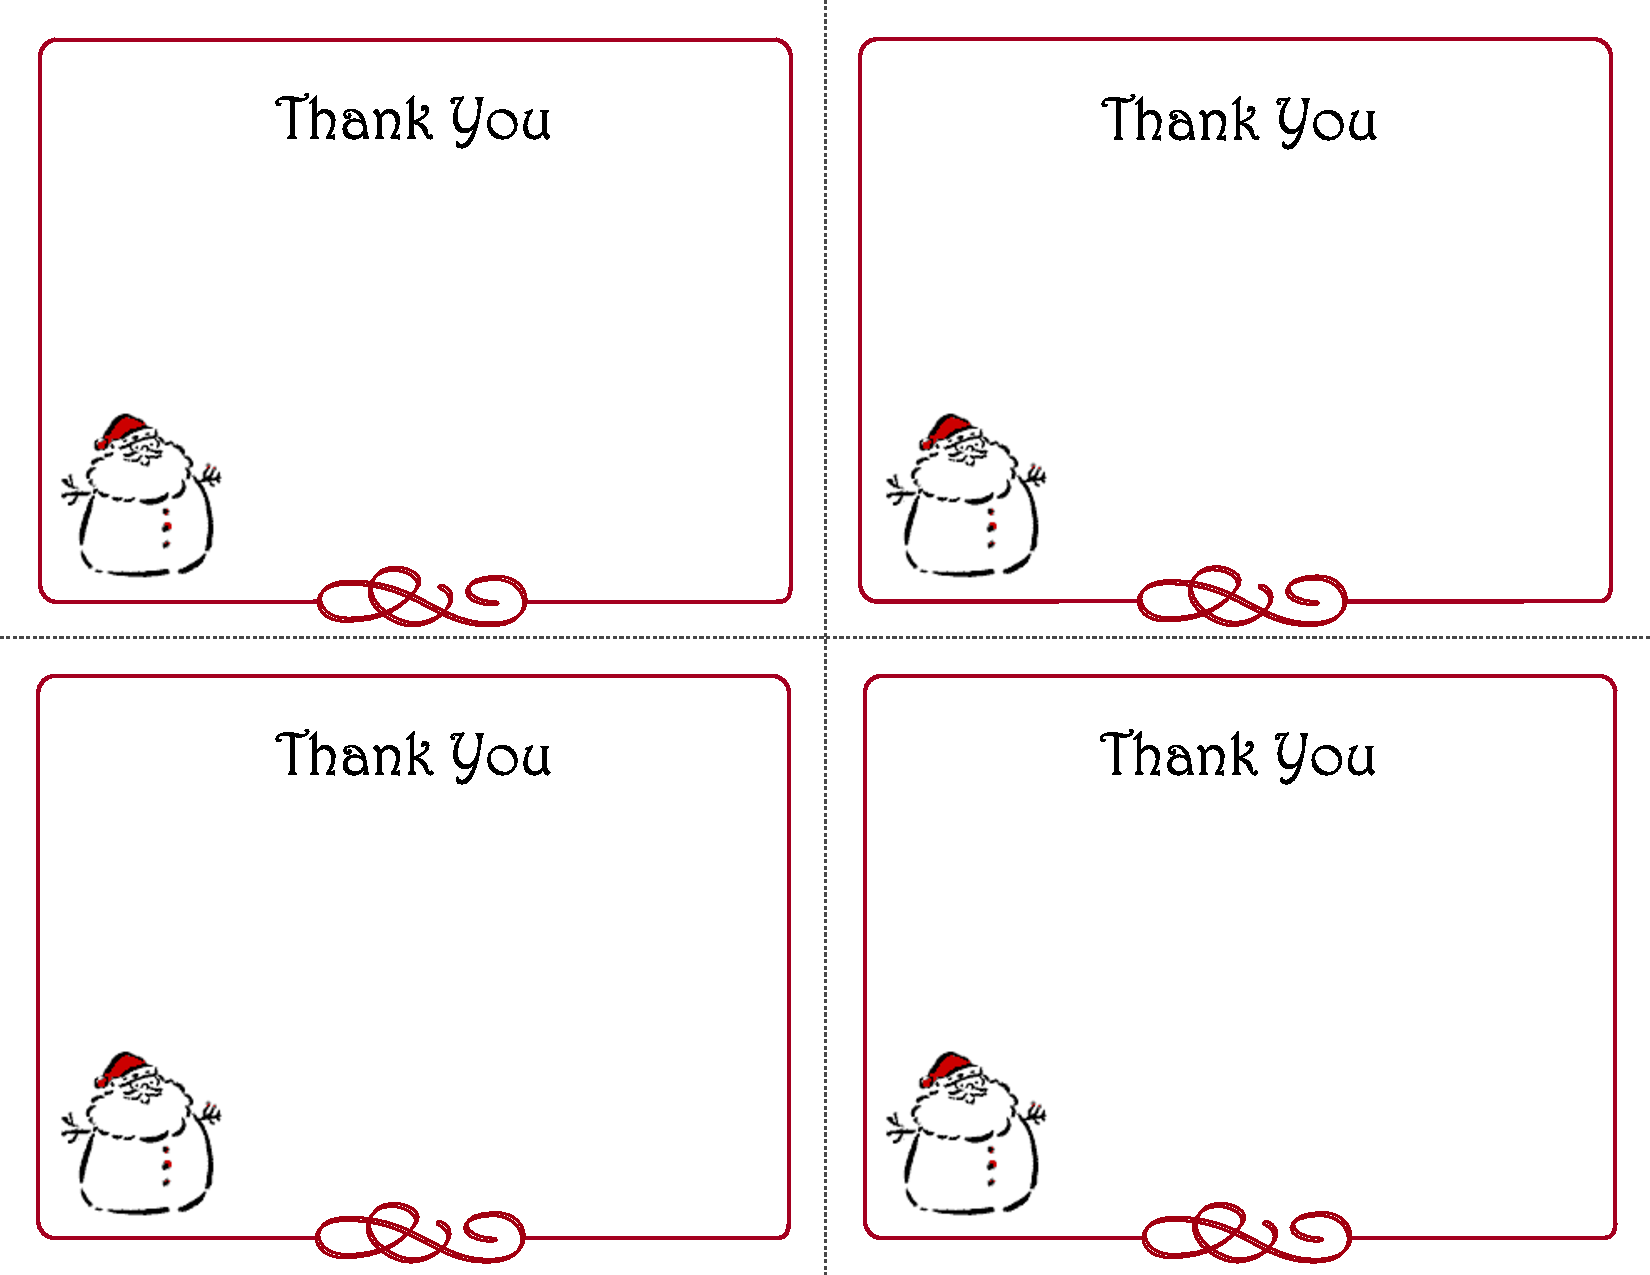 Free Thank You Cards Printable Free Printable Holiday Gift Tags Christmas Cards Printable Thank You Cards Business Thank You Cards Card Templates Printable